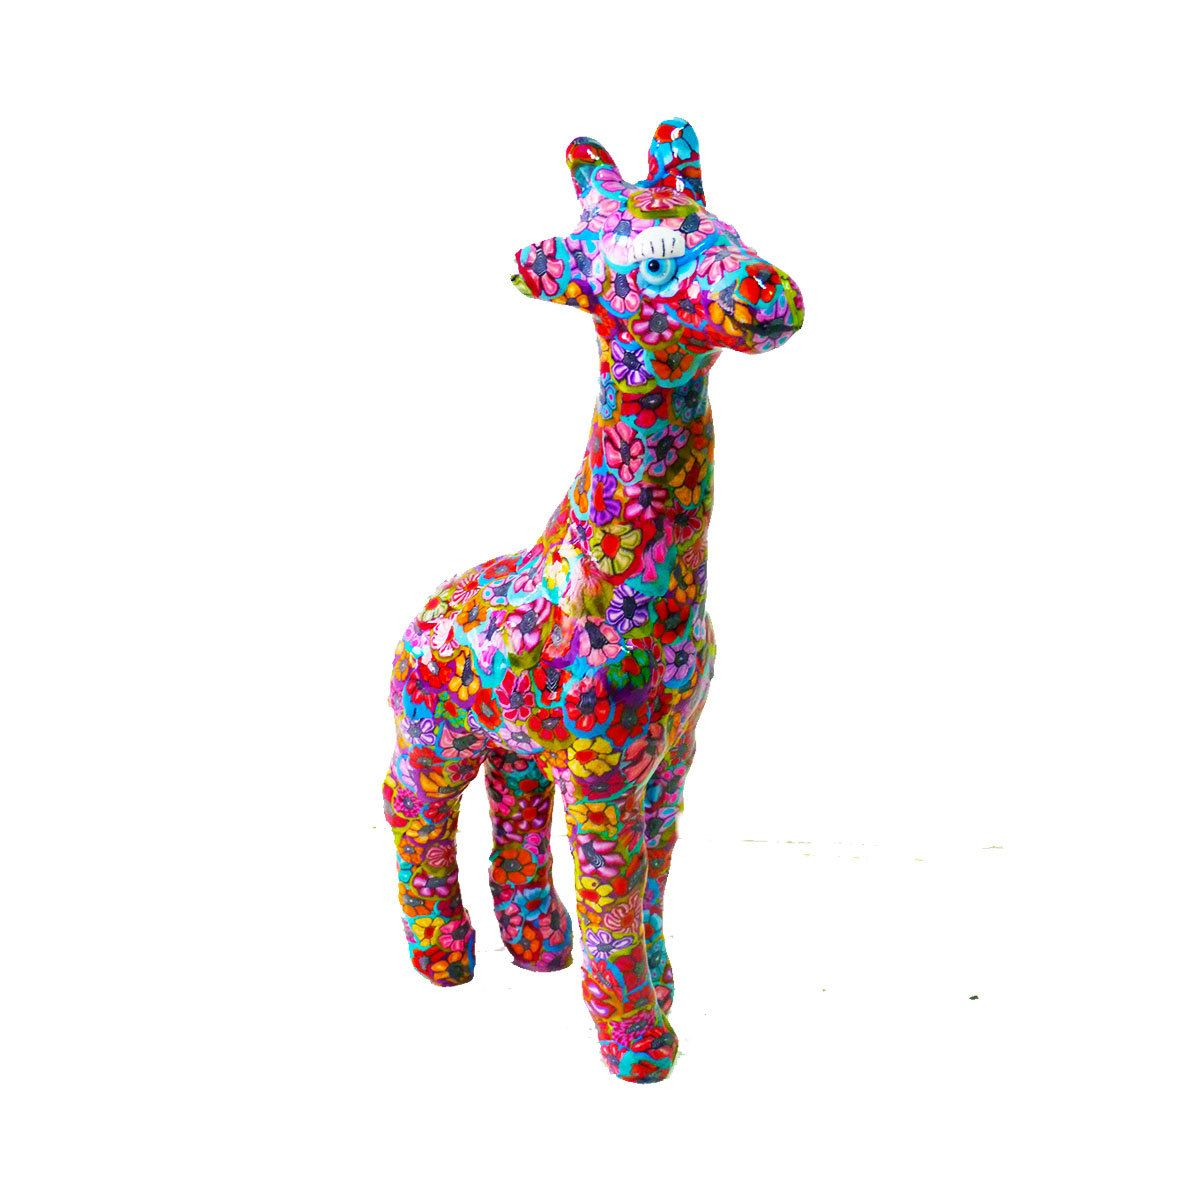 Modern giraffe sculpture  giraffe art giraffe decor  giraffe decoration  Giraffe giraffe sculpture Modern giraffe Giraffe sculpture giraffe art Modern giraffe art Giraffe decor Giraffe decoration home decor home design Giraffe collectible Giraffe gift safari animals Africa art object 68.00 USD #goriani